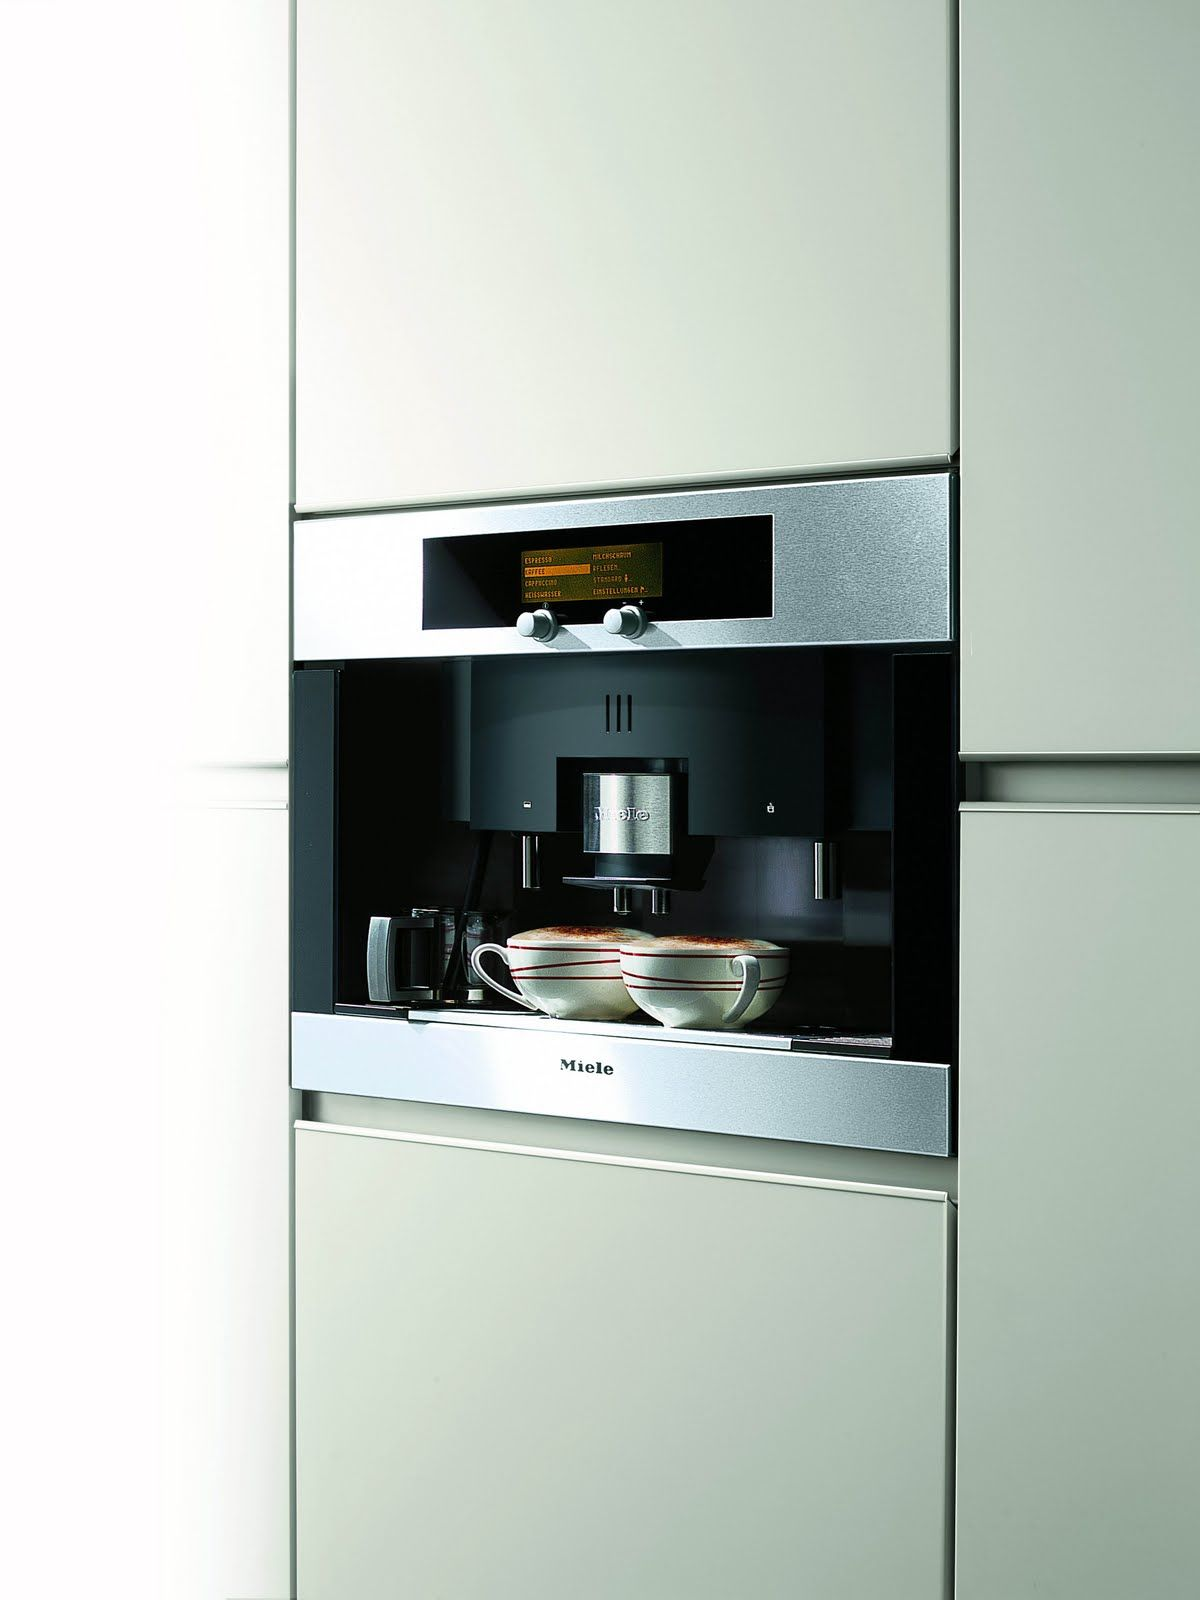 Miele Built In Coffee Maker Yes I Want One My Kitchen